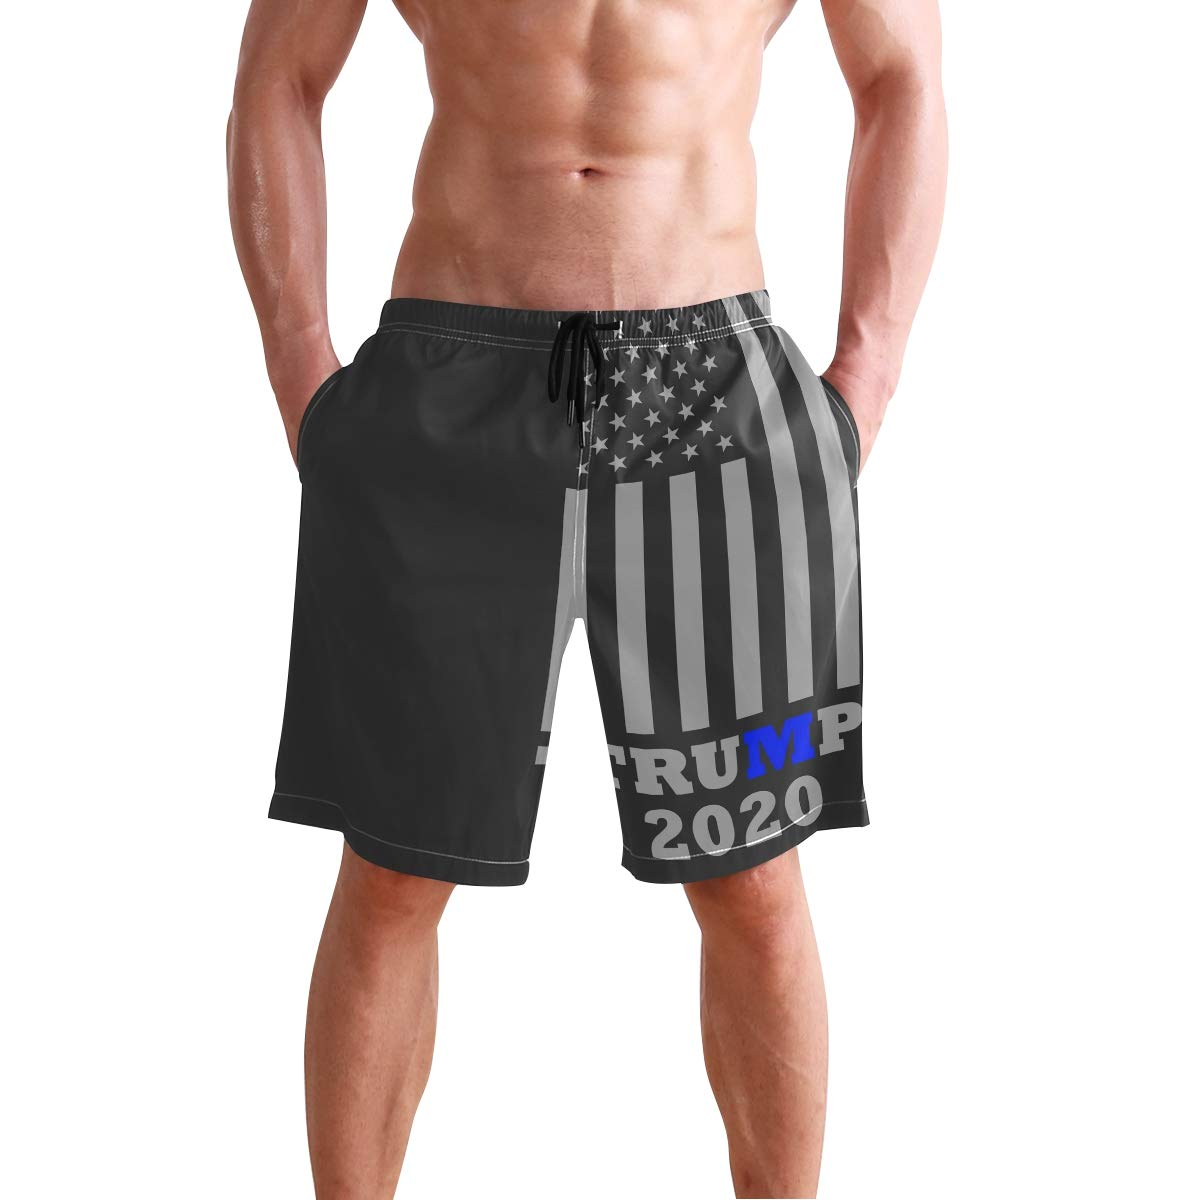 6a09f86479 Art USA Flag Mens Swim Trunks Quick Dry Board Shorts With Pockets Summer  Swimsuit Beach Short